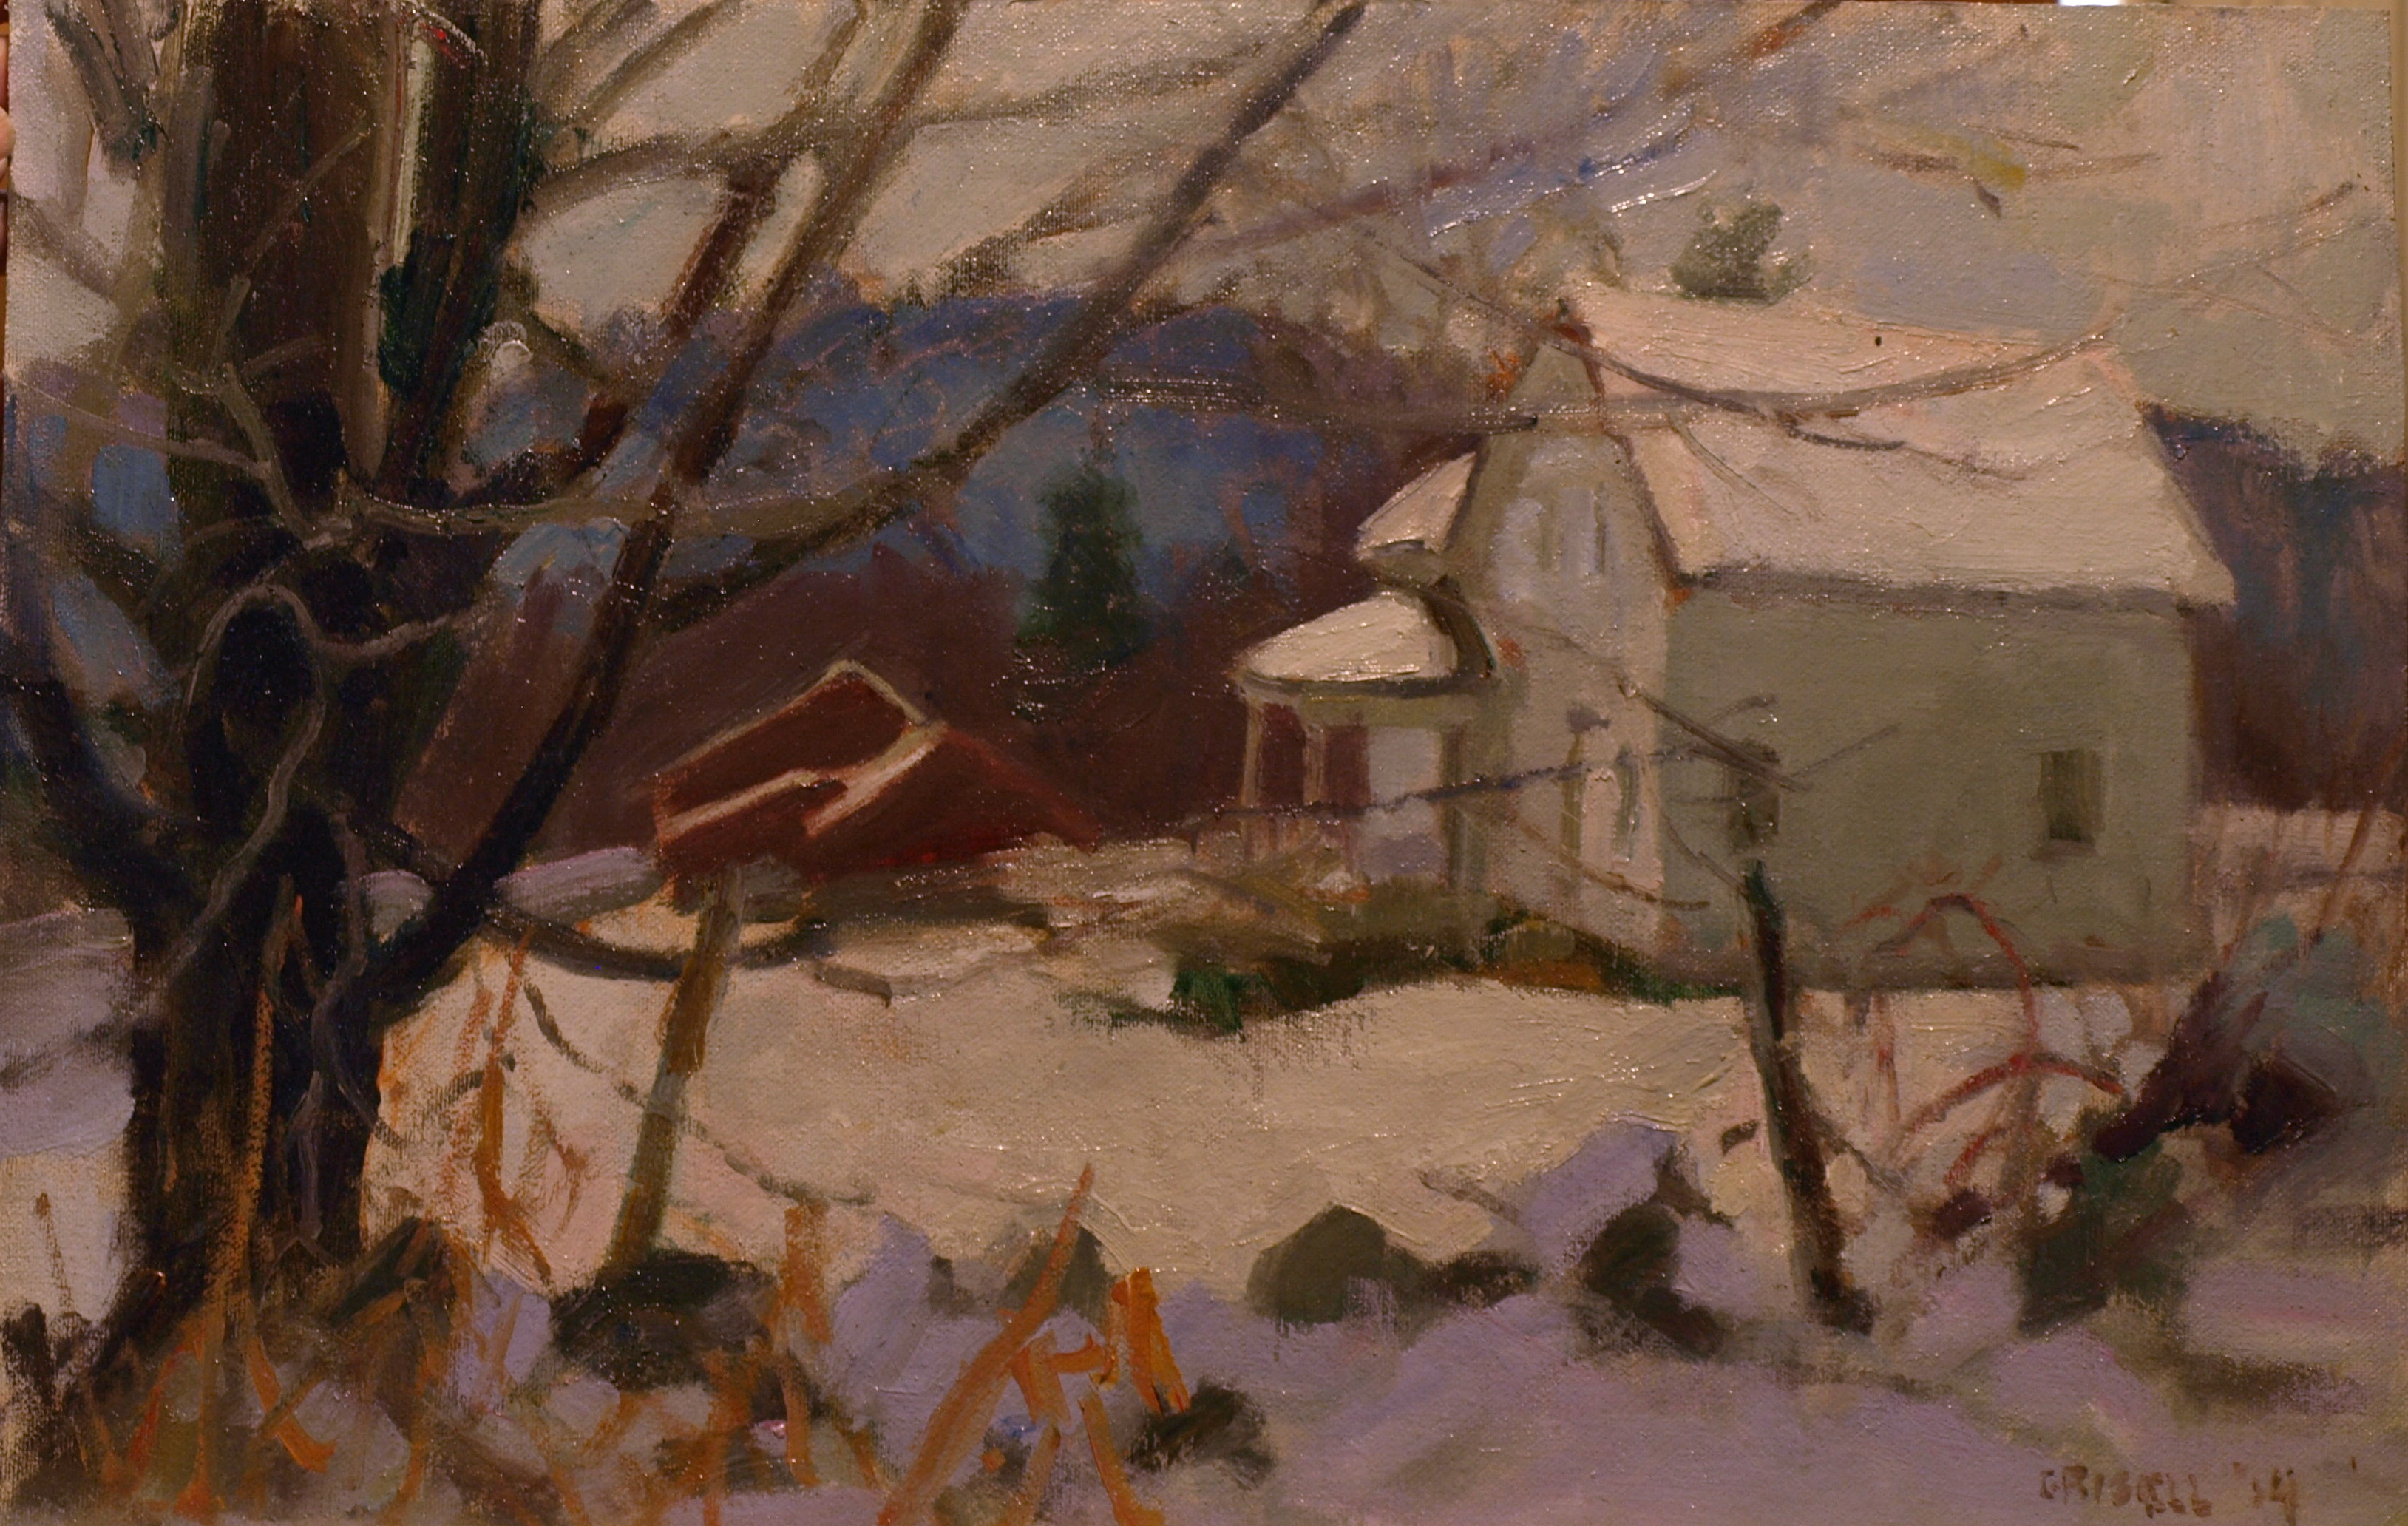 November Snow, Oil on Canvas on Panel, 12 x 18 Inches, by Susan Grisell, $350